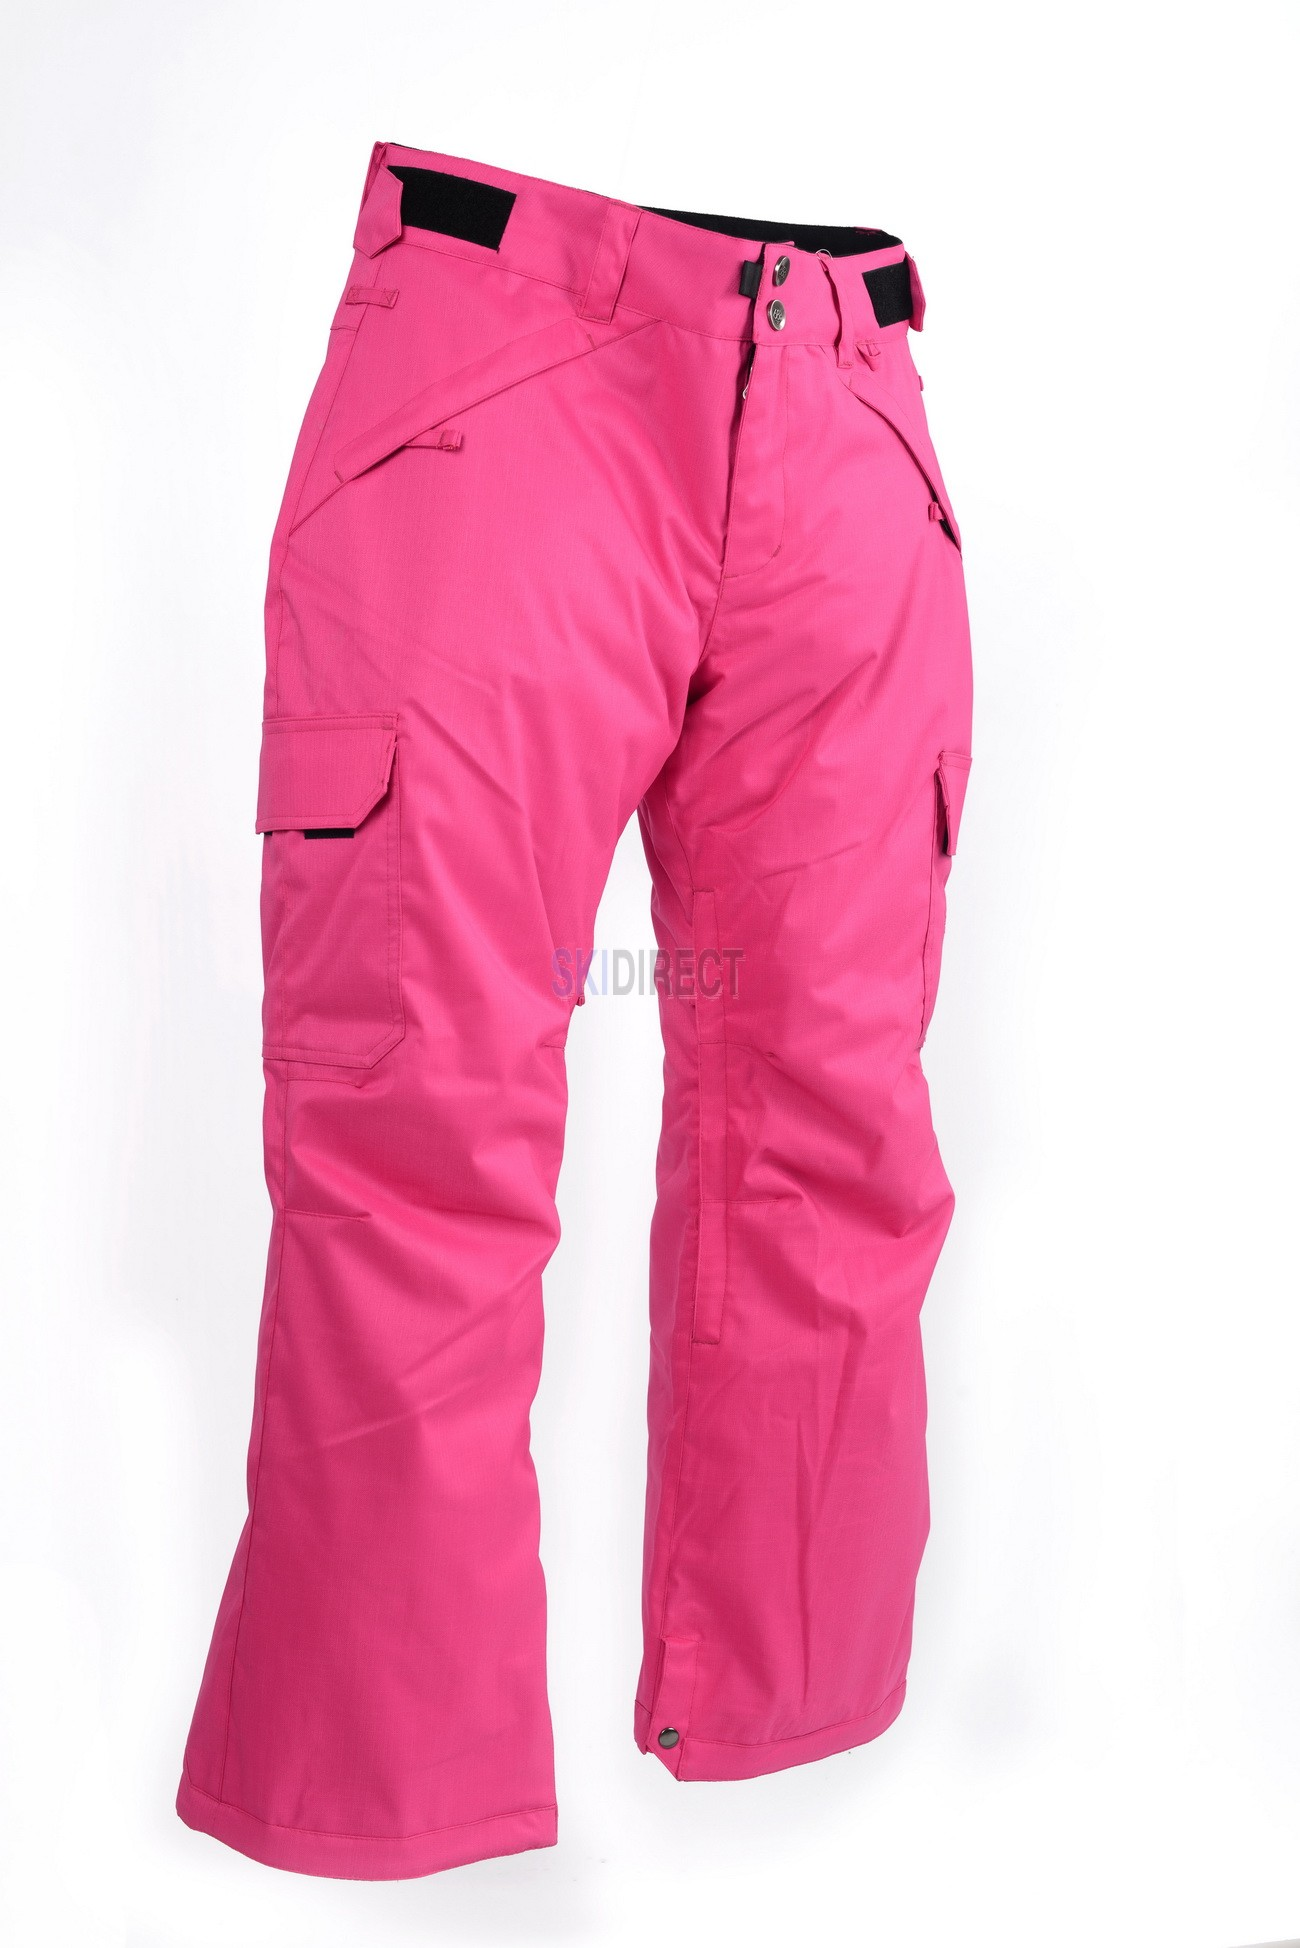 686 Womens Mannual Spectrum Insulated Snowboard Pants